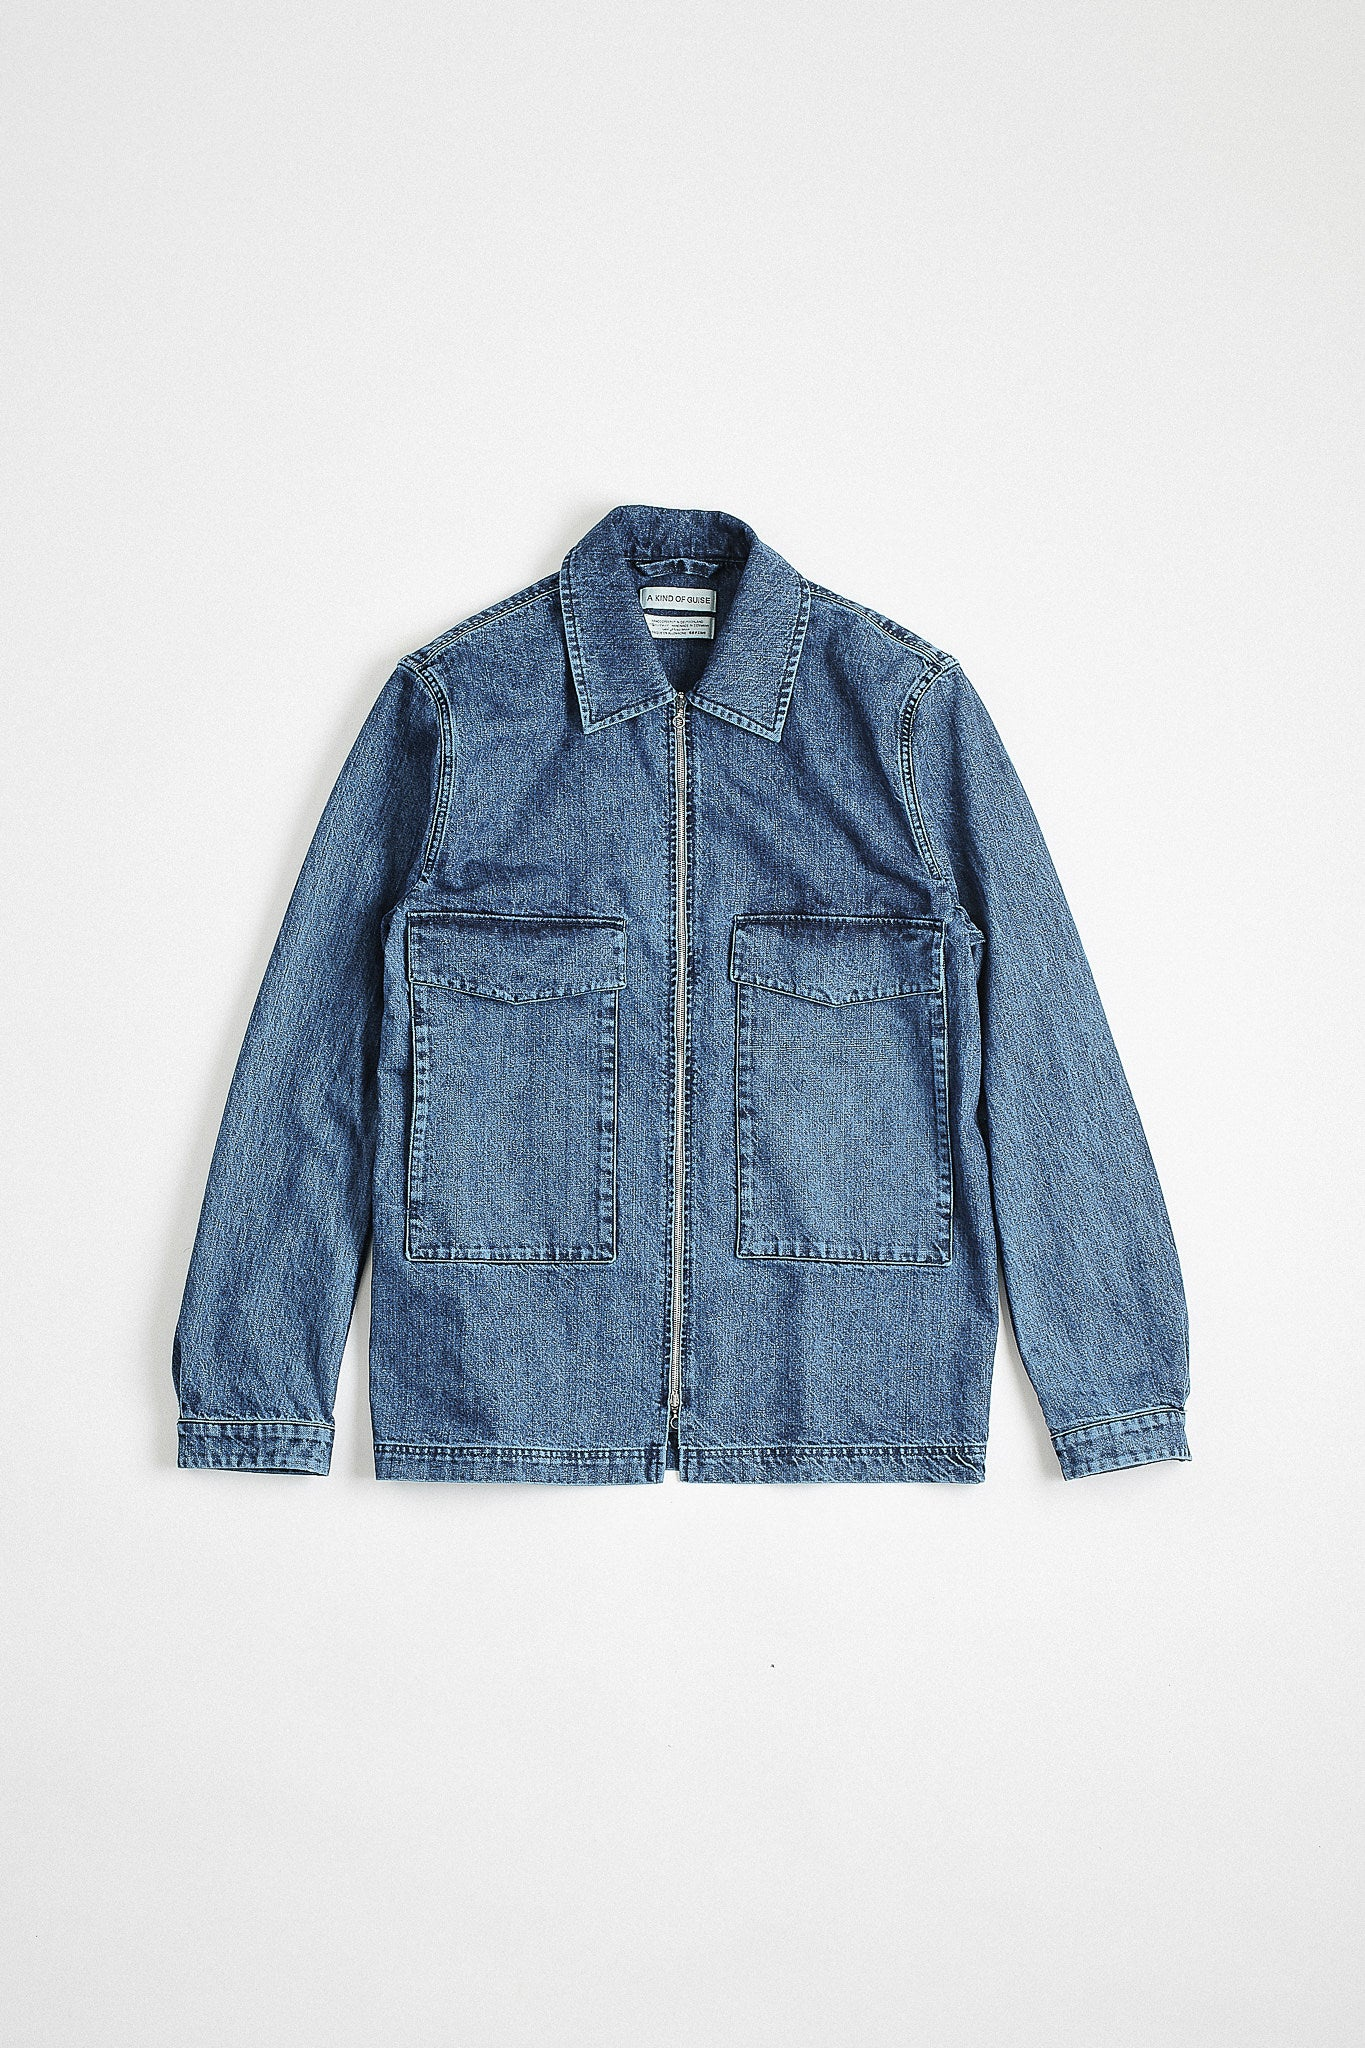 Lir overshirt bleached denim